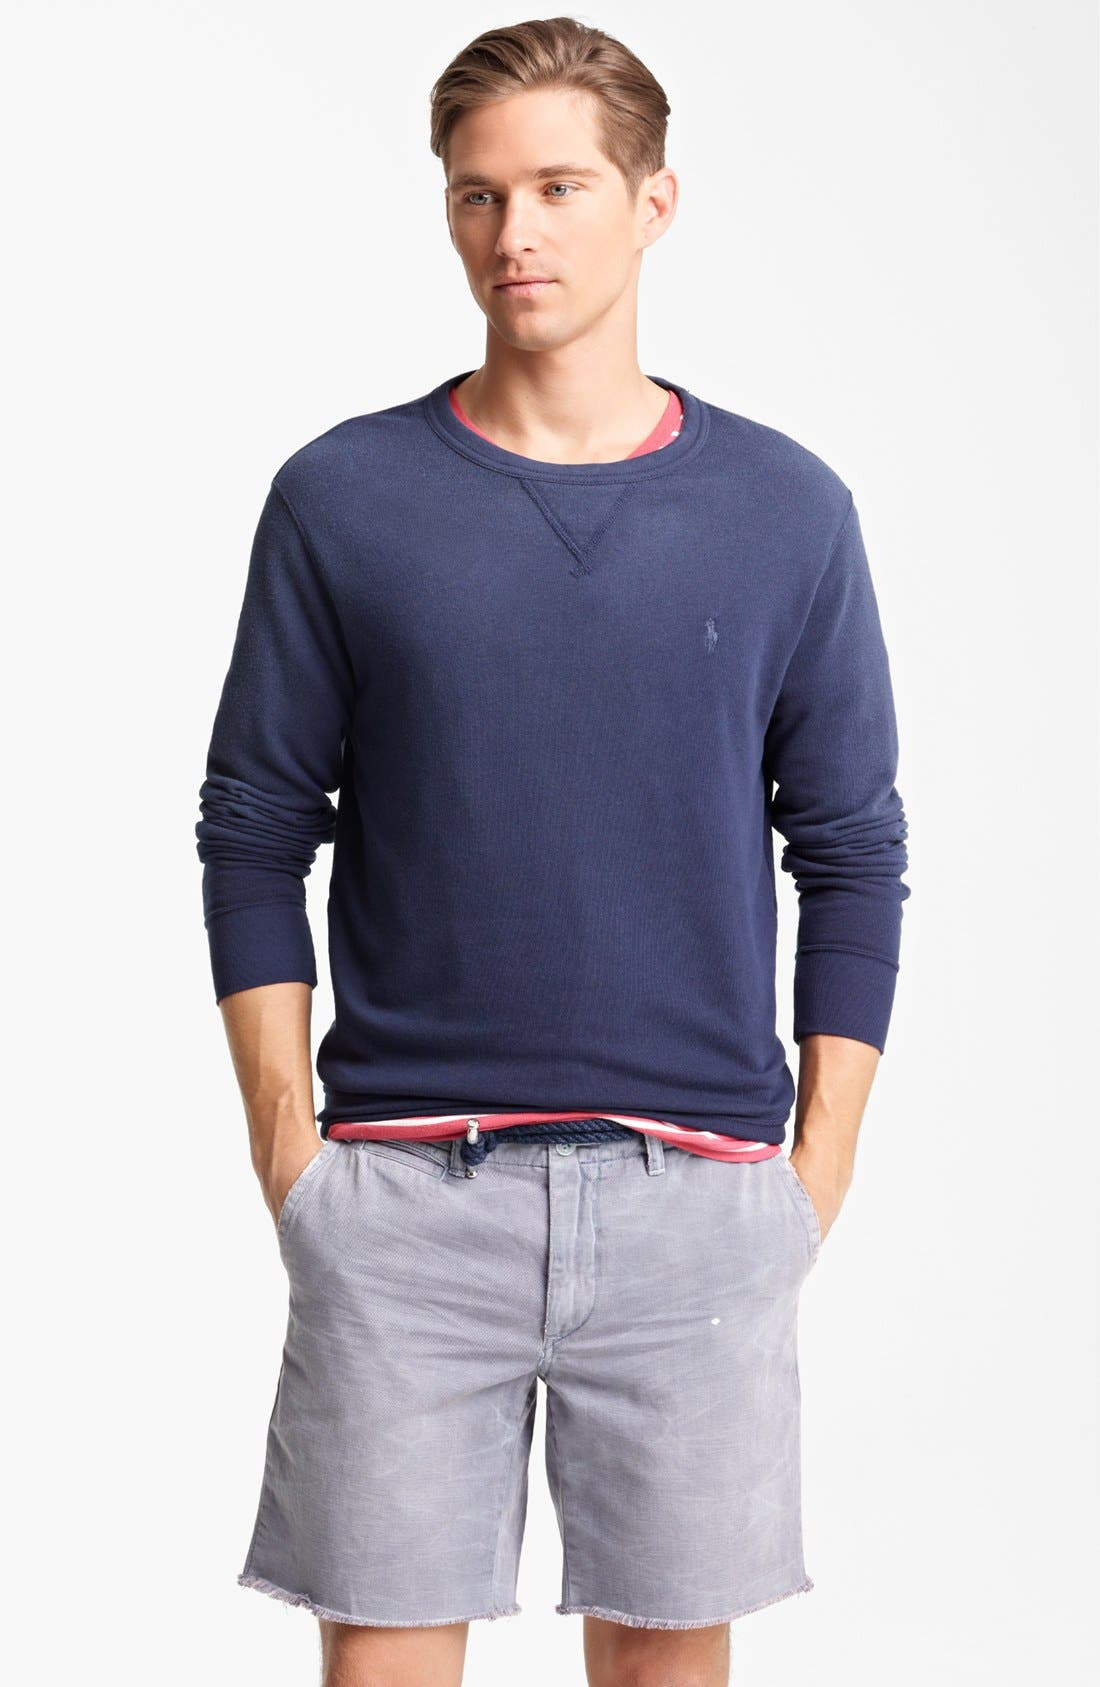 Main Image - Polo Ralph Lauren Sweat Shirt